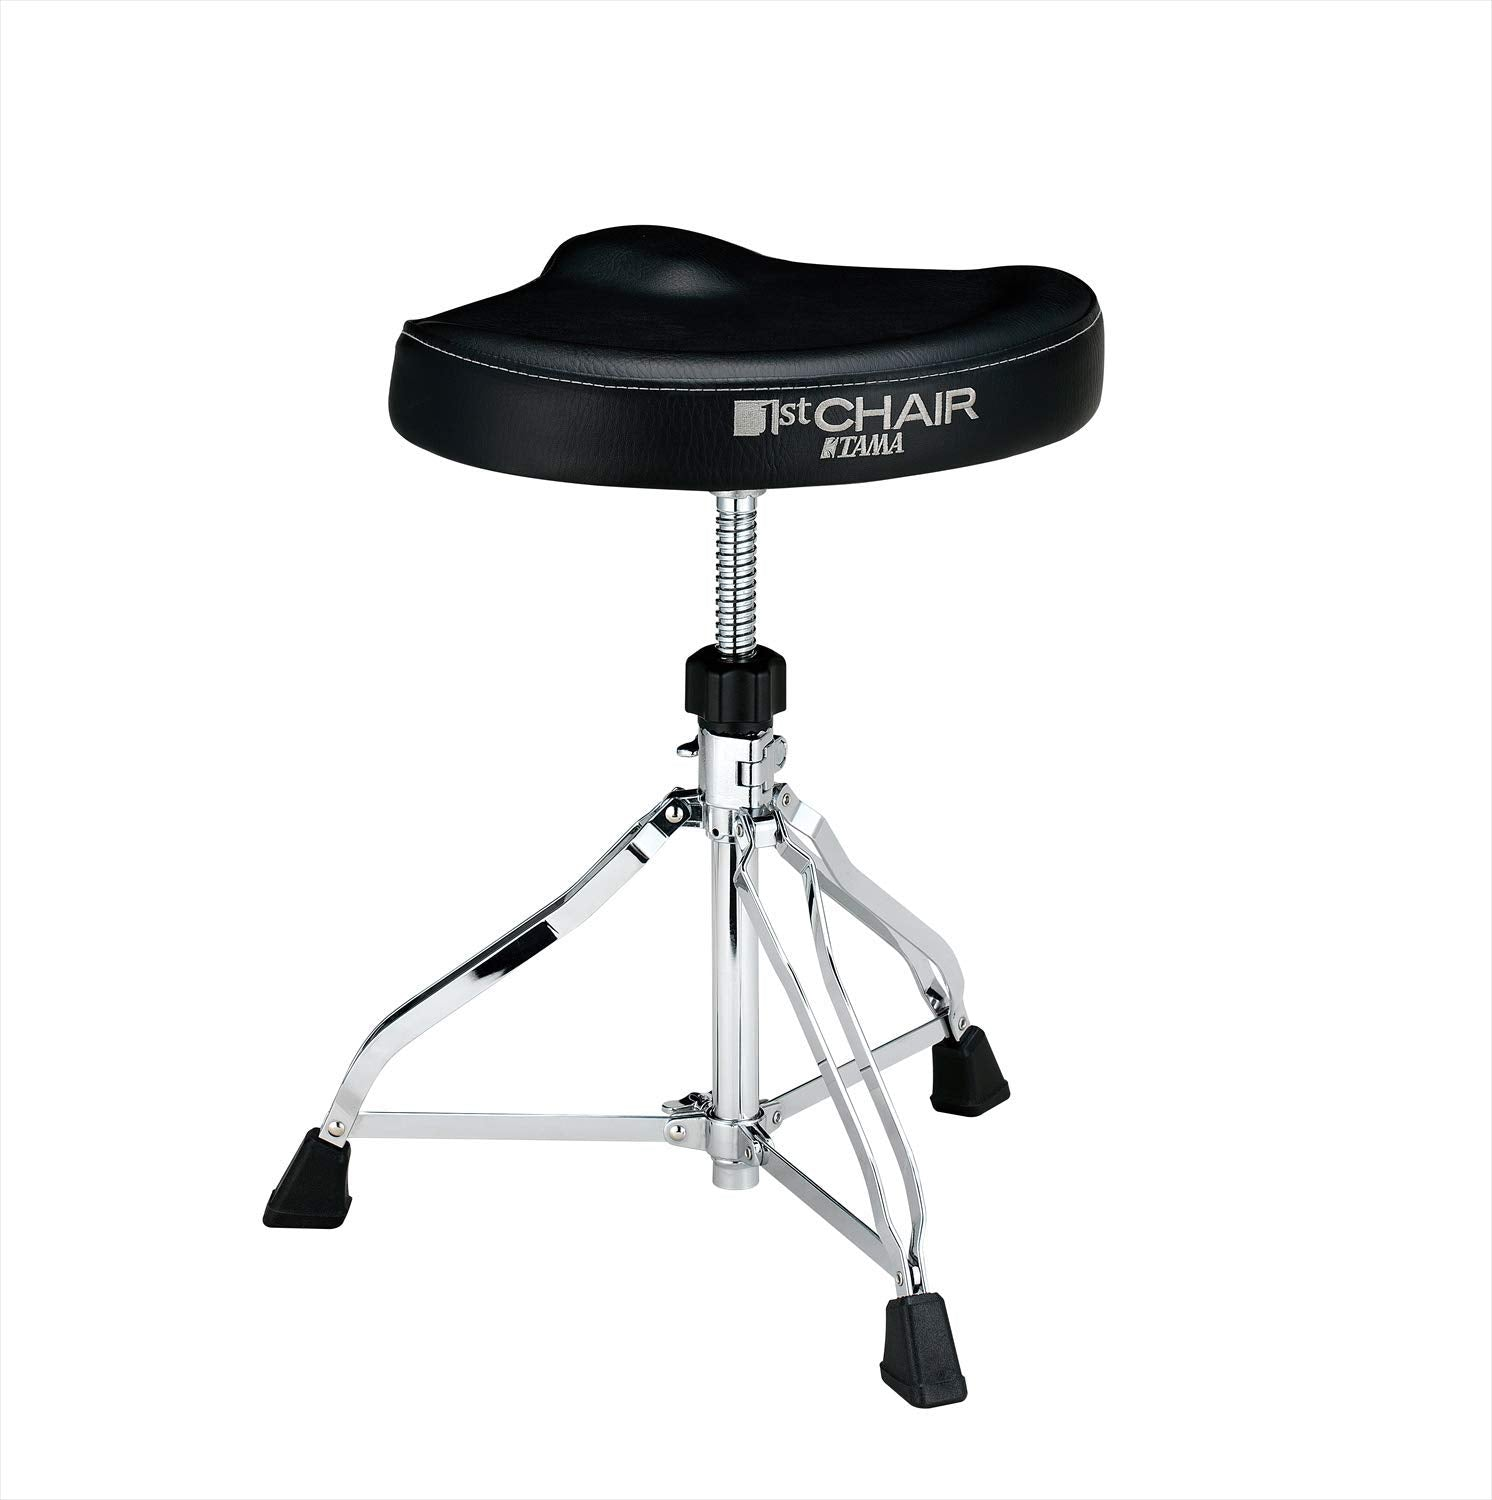 Shop online for Tama HT250 1st Chair Saddle Style Drum Throne today. Now available for purchase from Midlothian Music of Orland Park, Illinois, USA